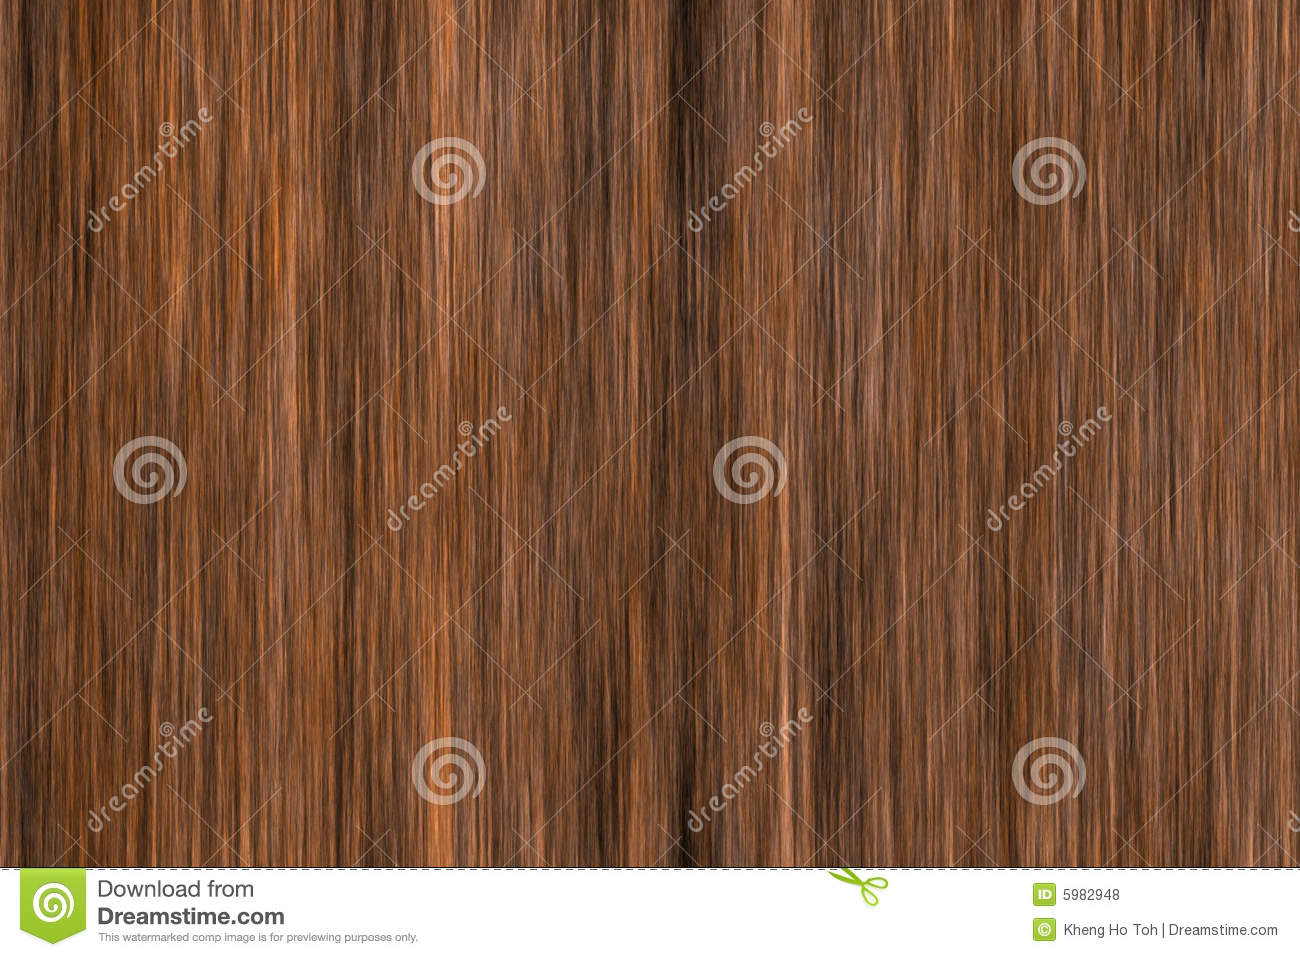 Grainy Wood Texture Stock Illustration Illustration Of Textures